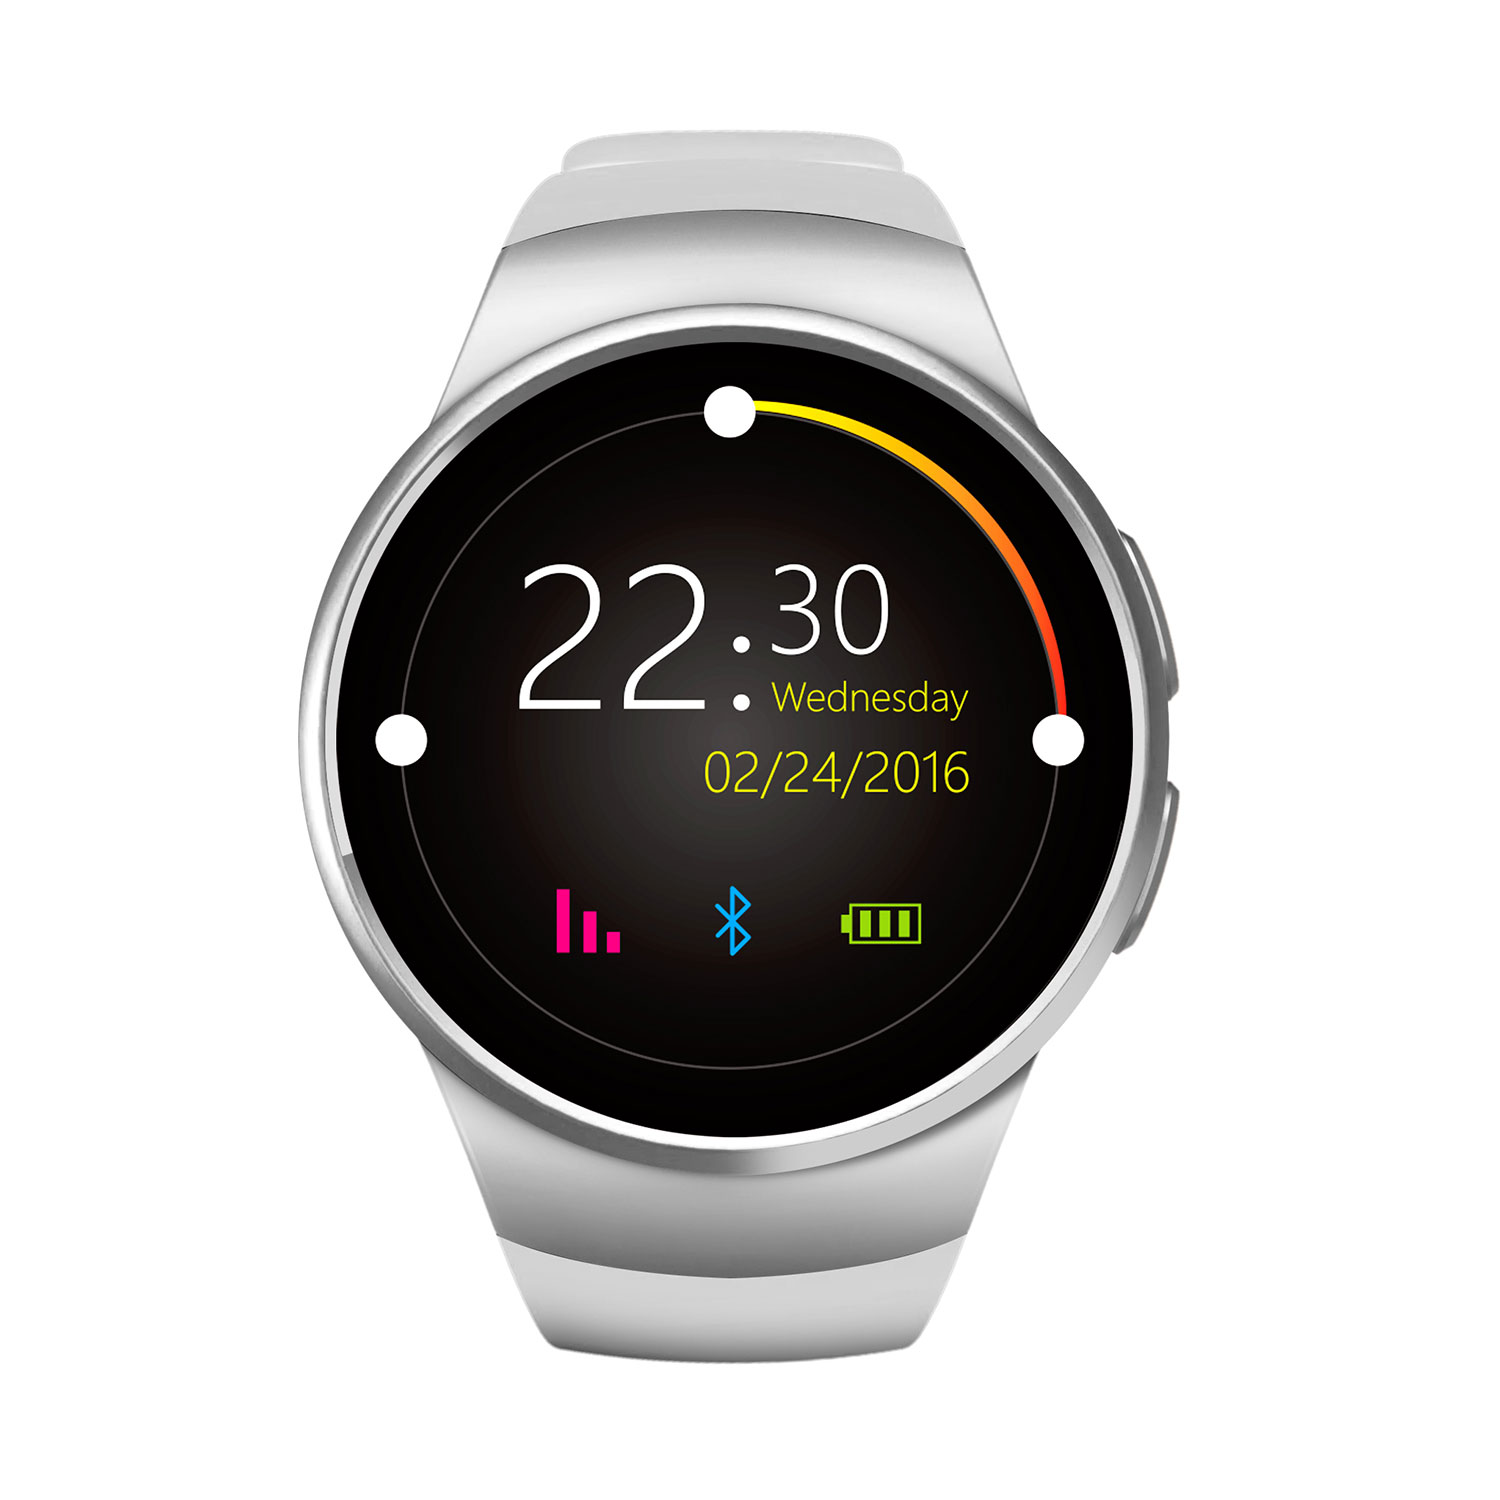 Fashion Round Smart Watches New KW18 Heart Rate Monitor Smartwatch Sim Bluetooth Watch Wearable Devices for Android ISO Apple(China (Mainland))